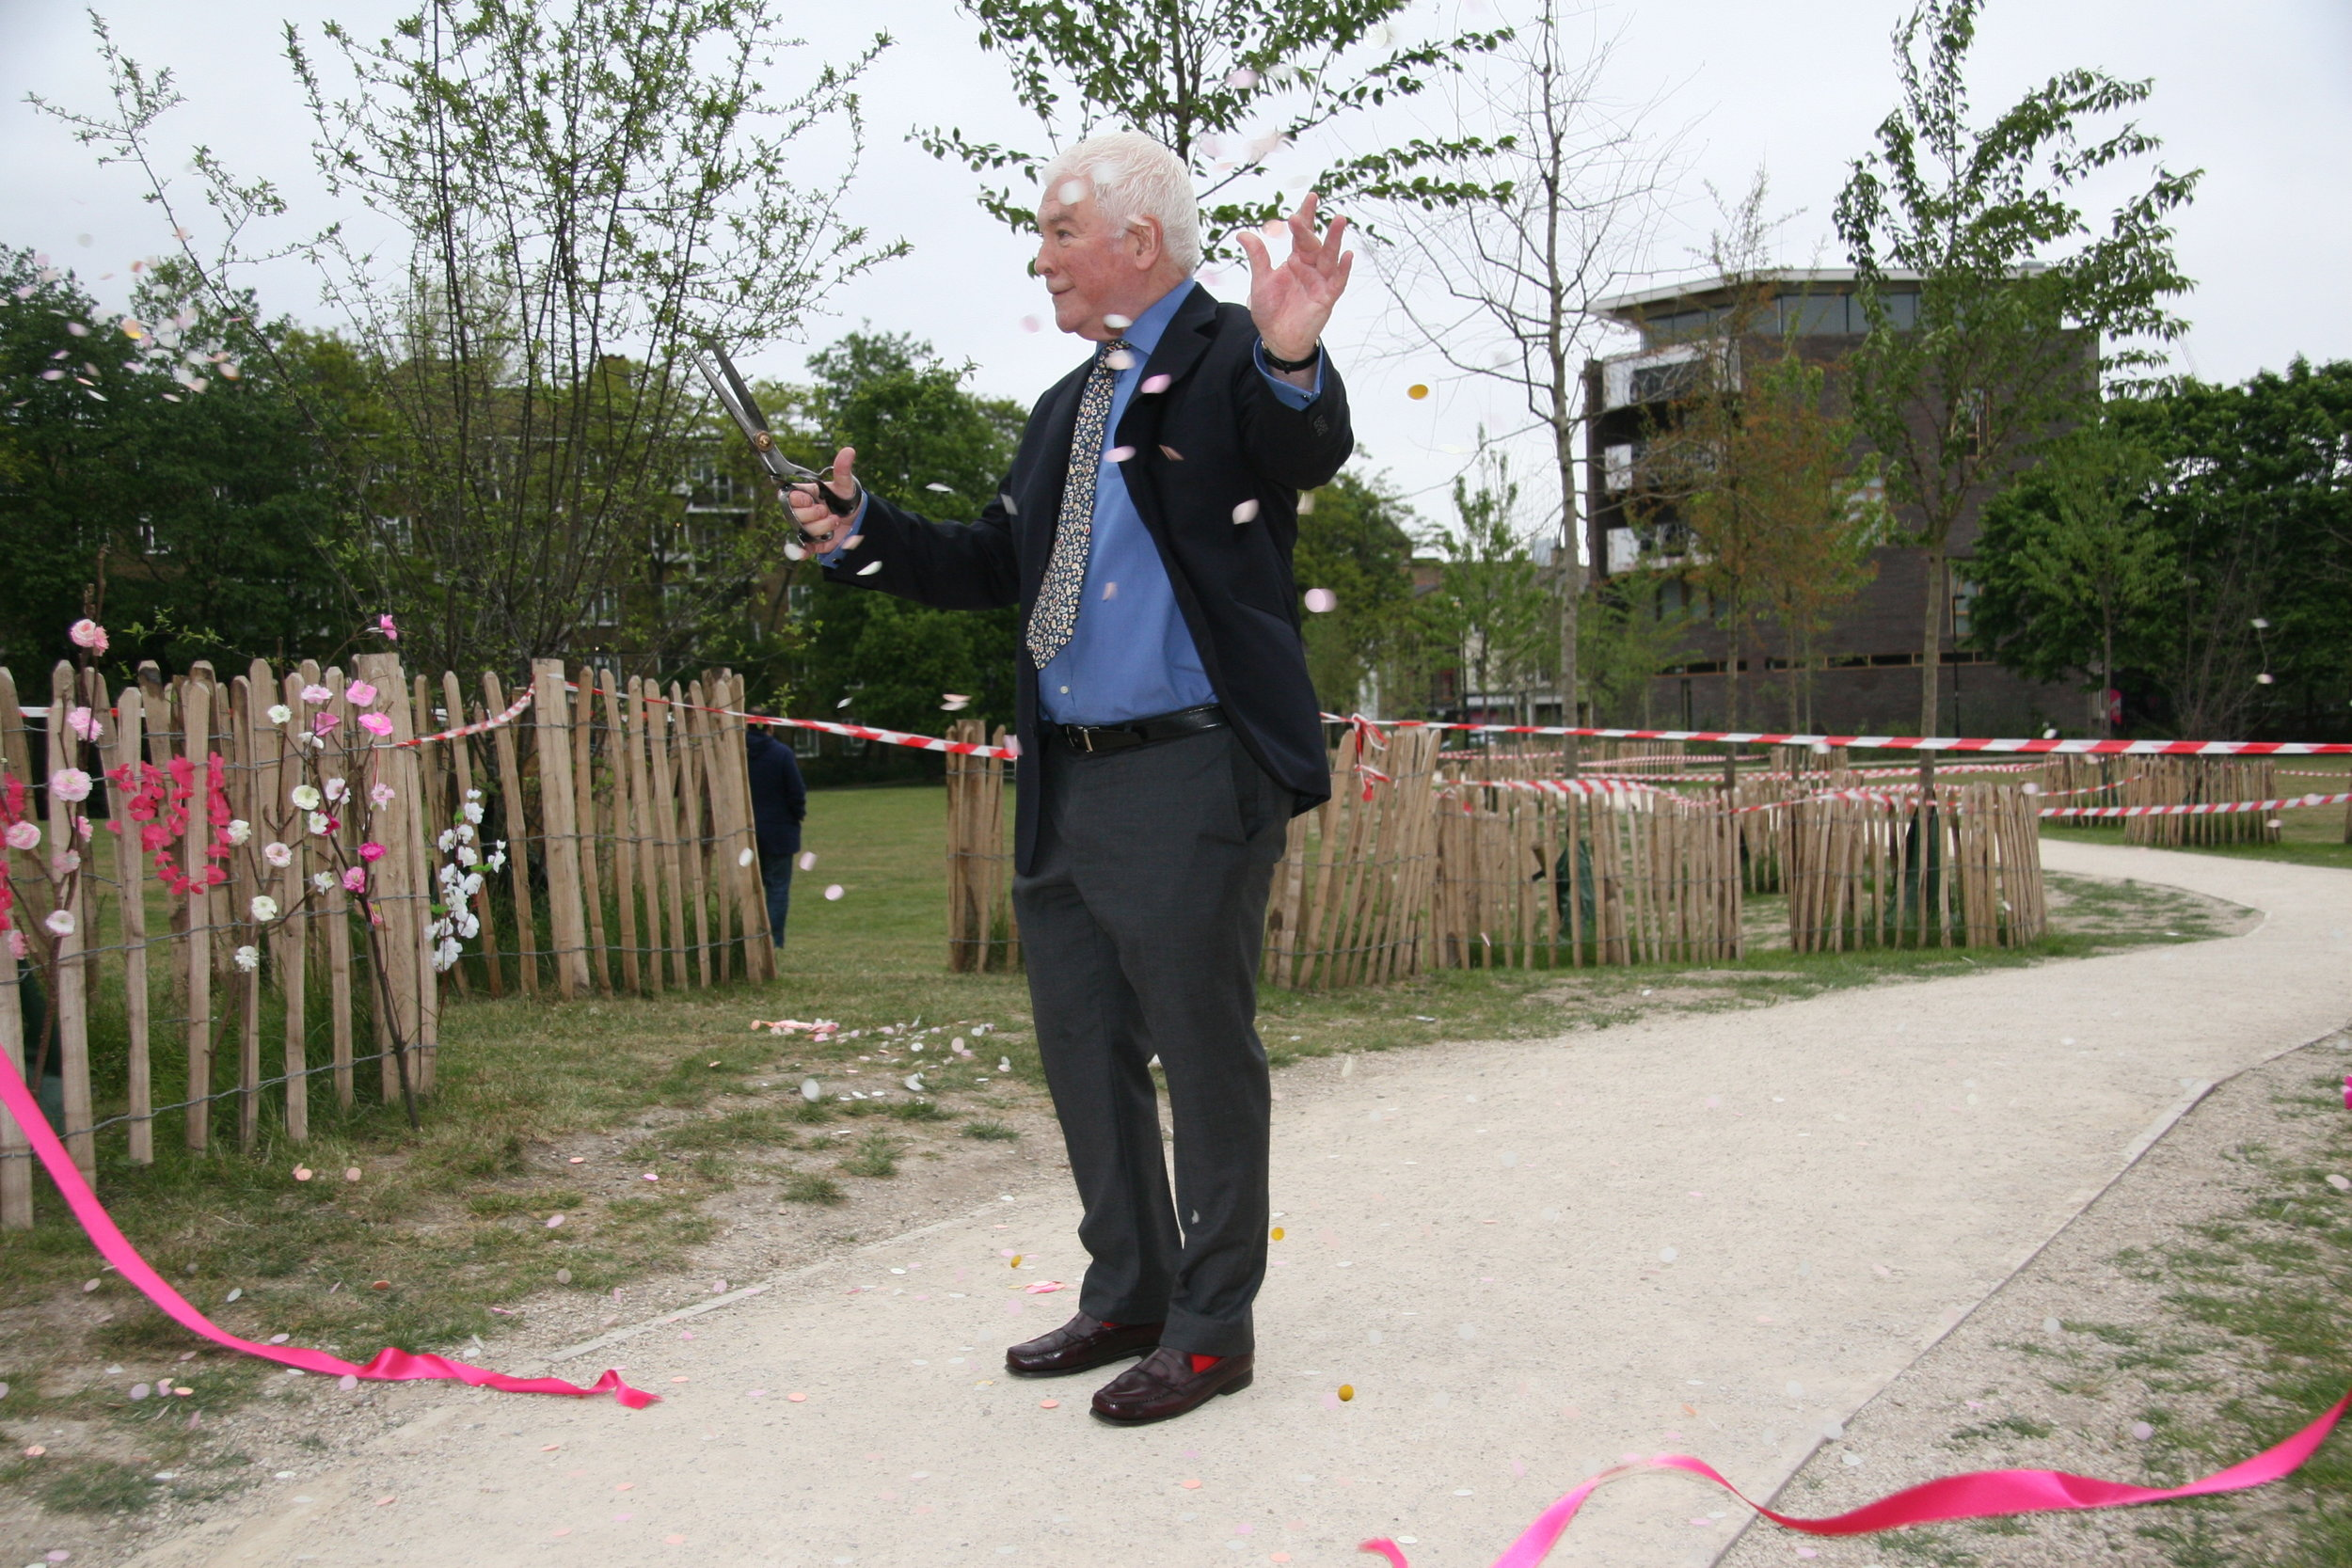 The deed is done: The Vauxhall Pleasure Gardens Cherry Walk is officially open!